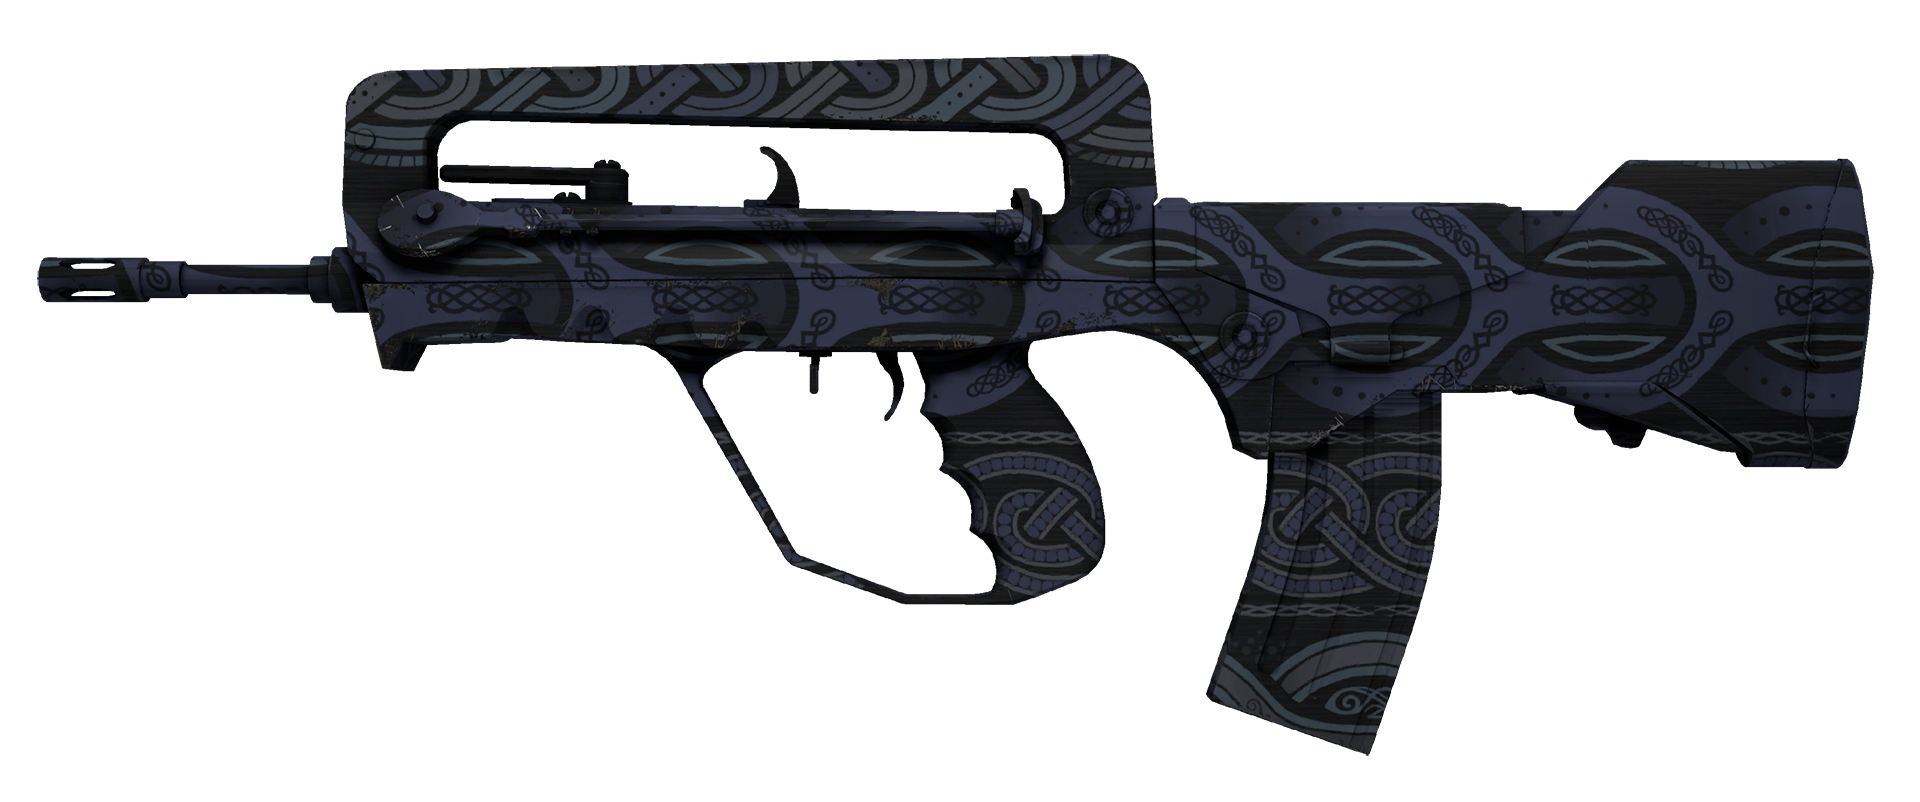 FAMAS Night Borre Large Rendering